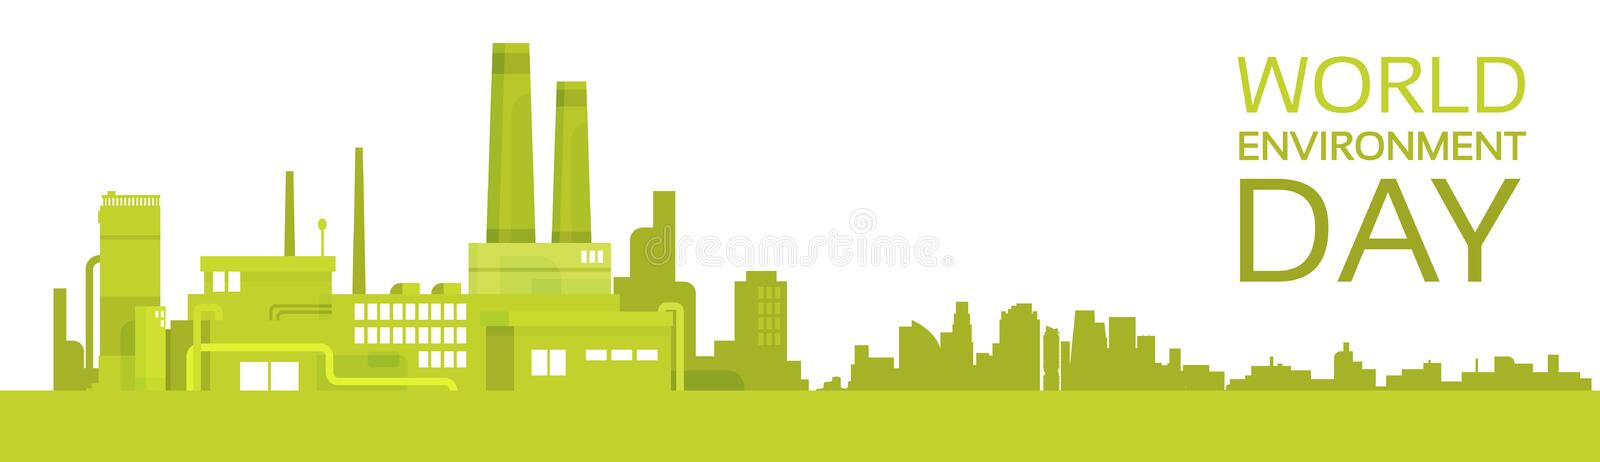 Silhouette Green Plant World Environment Day Factory Banner vector illustration